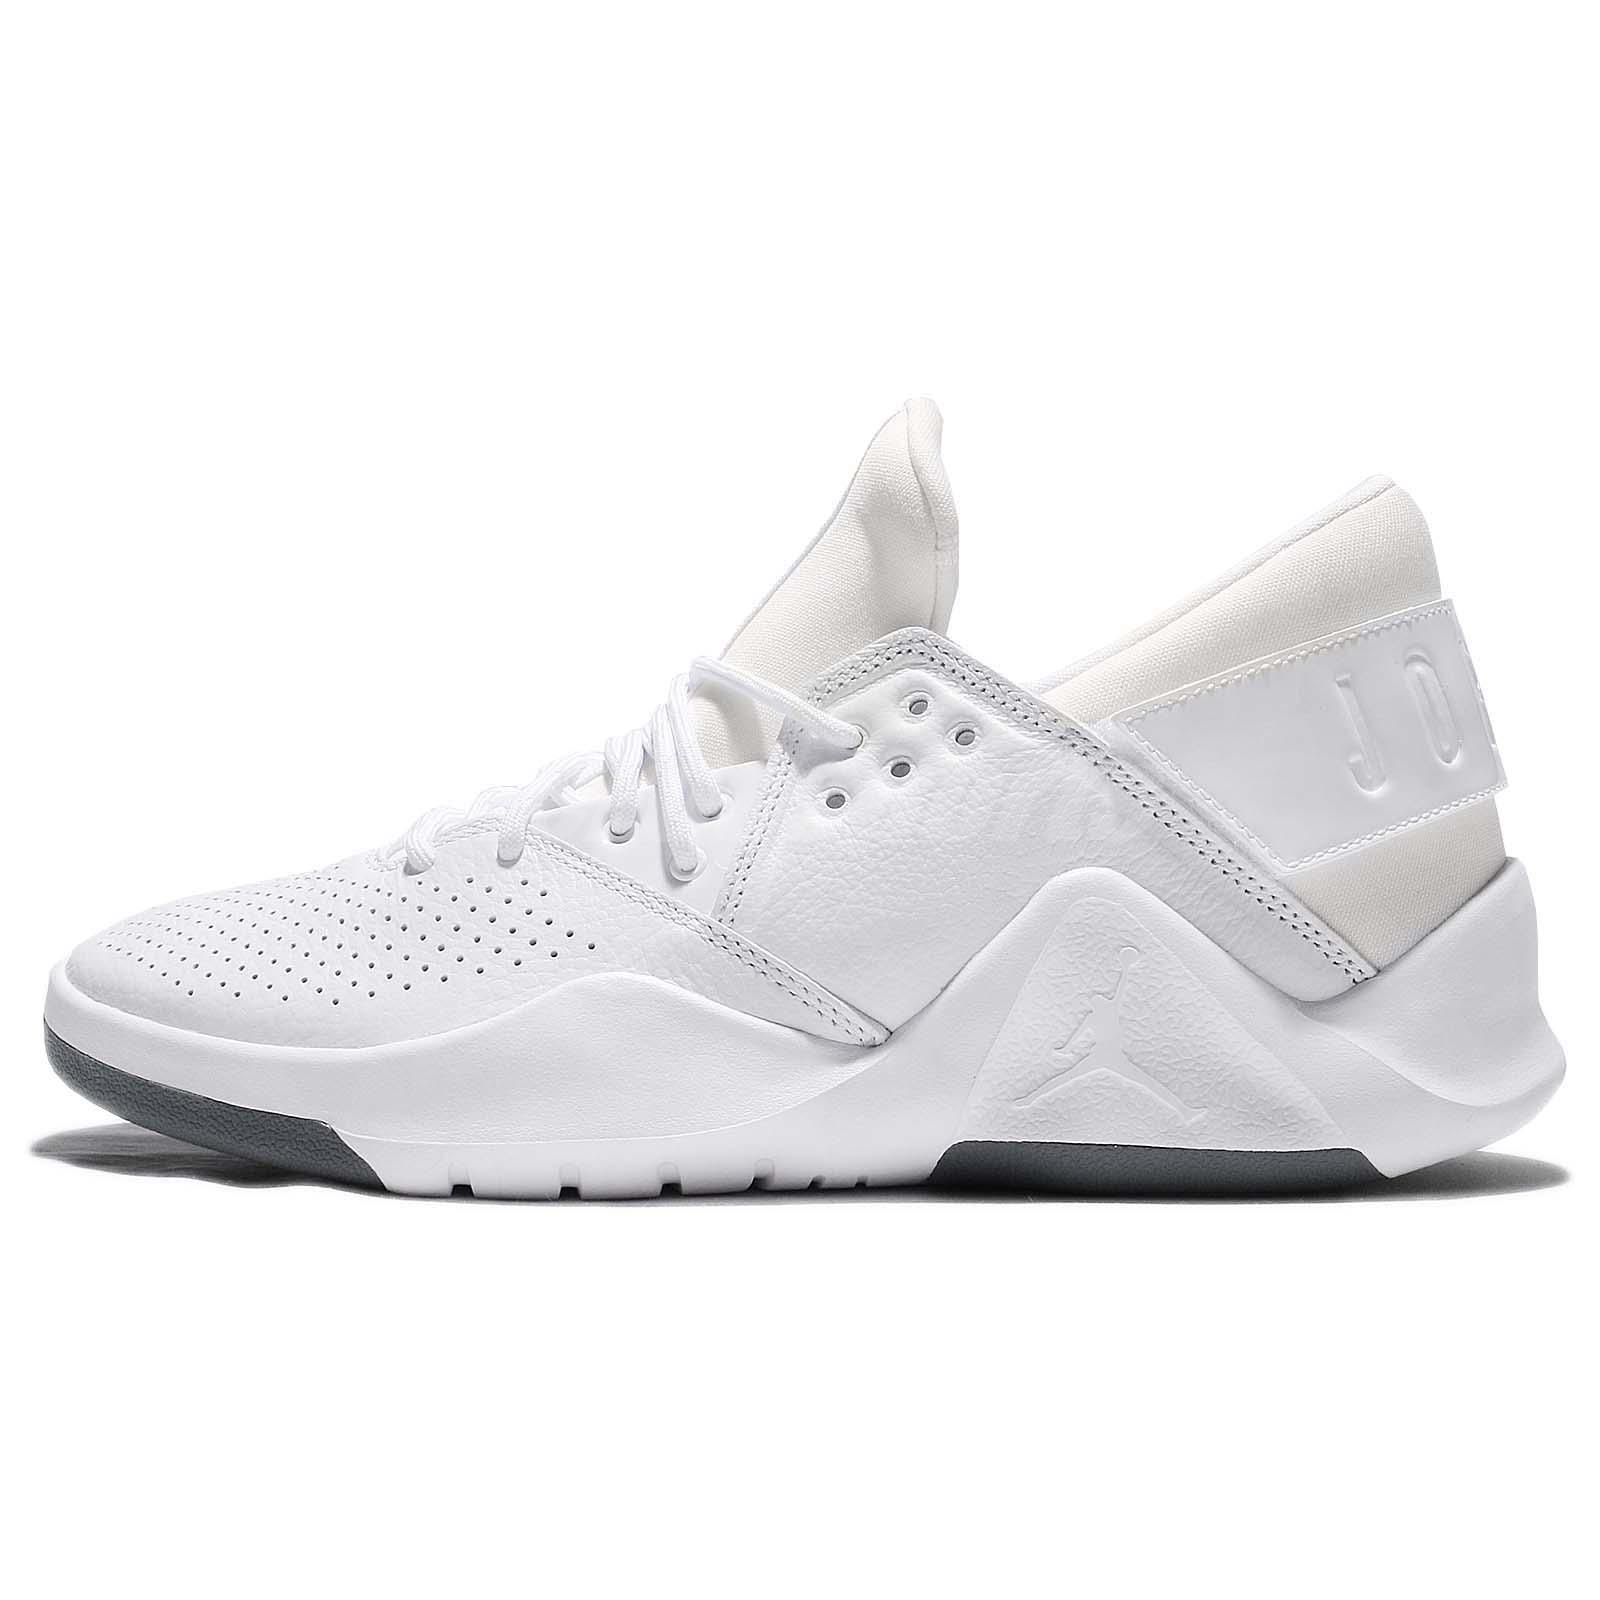 6b3d4795e2e Nike Jordan Flight Fresh PREM Low White Men Basketball Training Shoes  AH6462-100